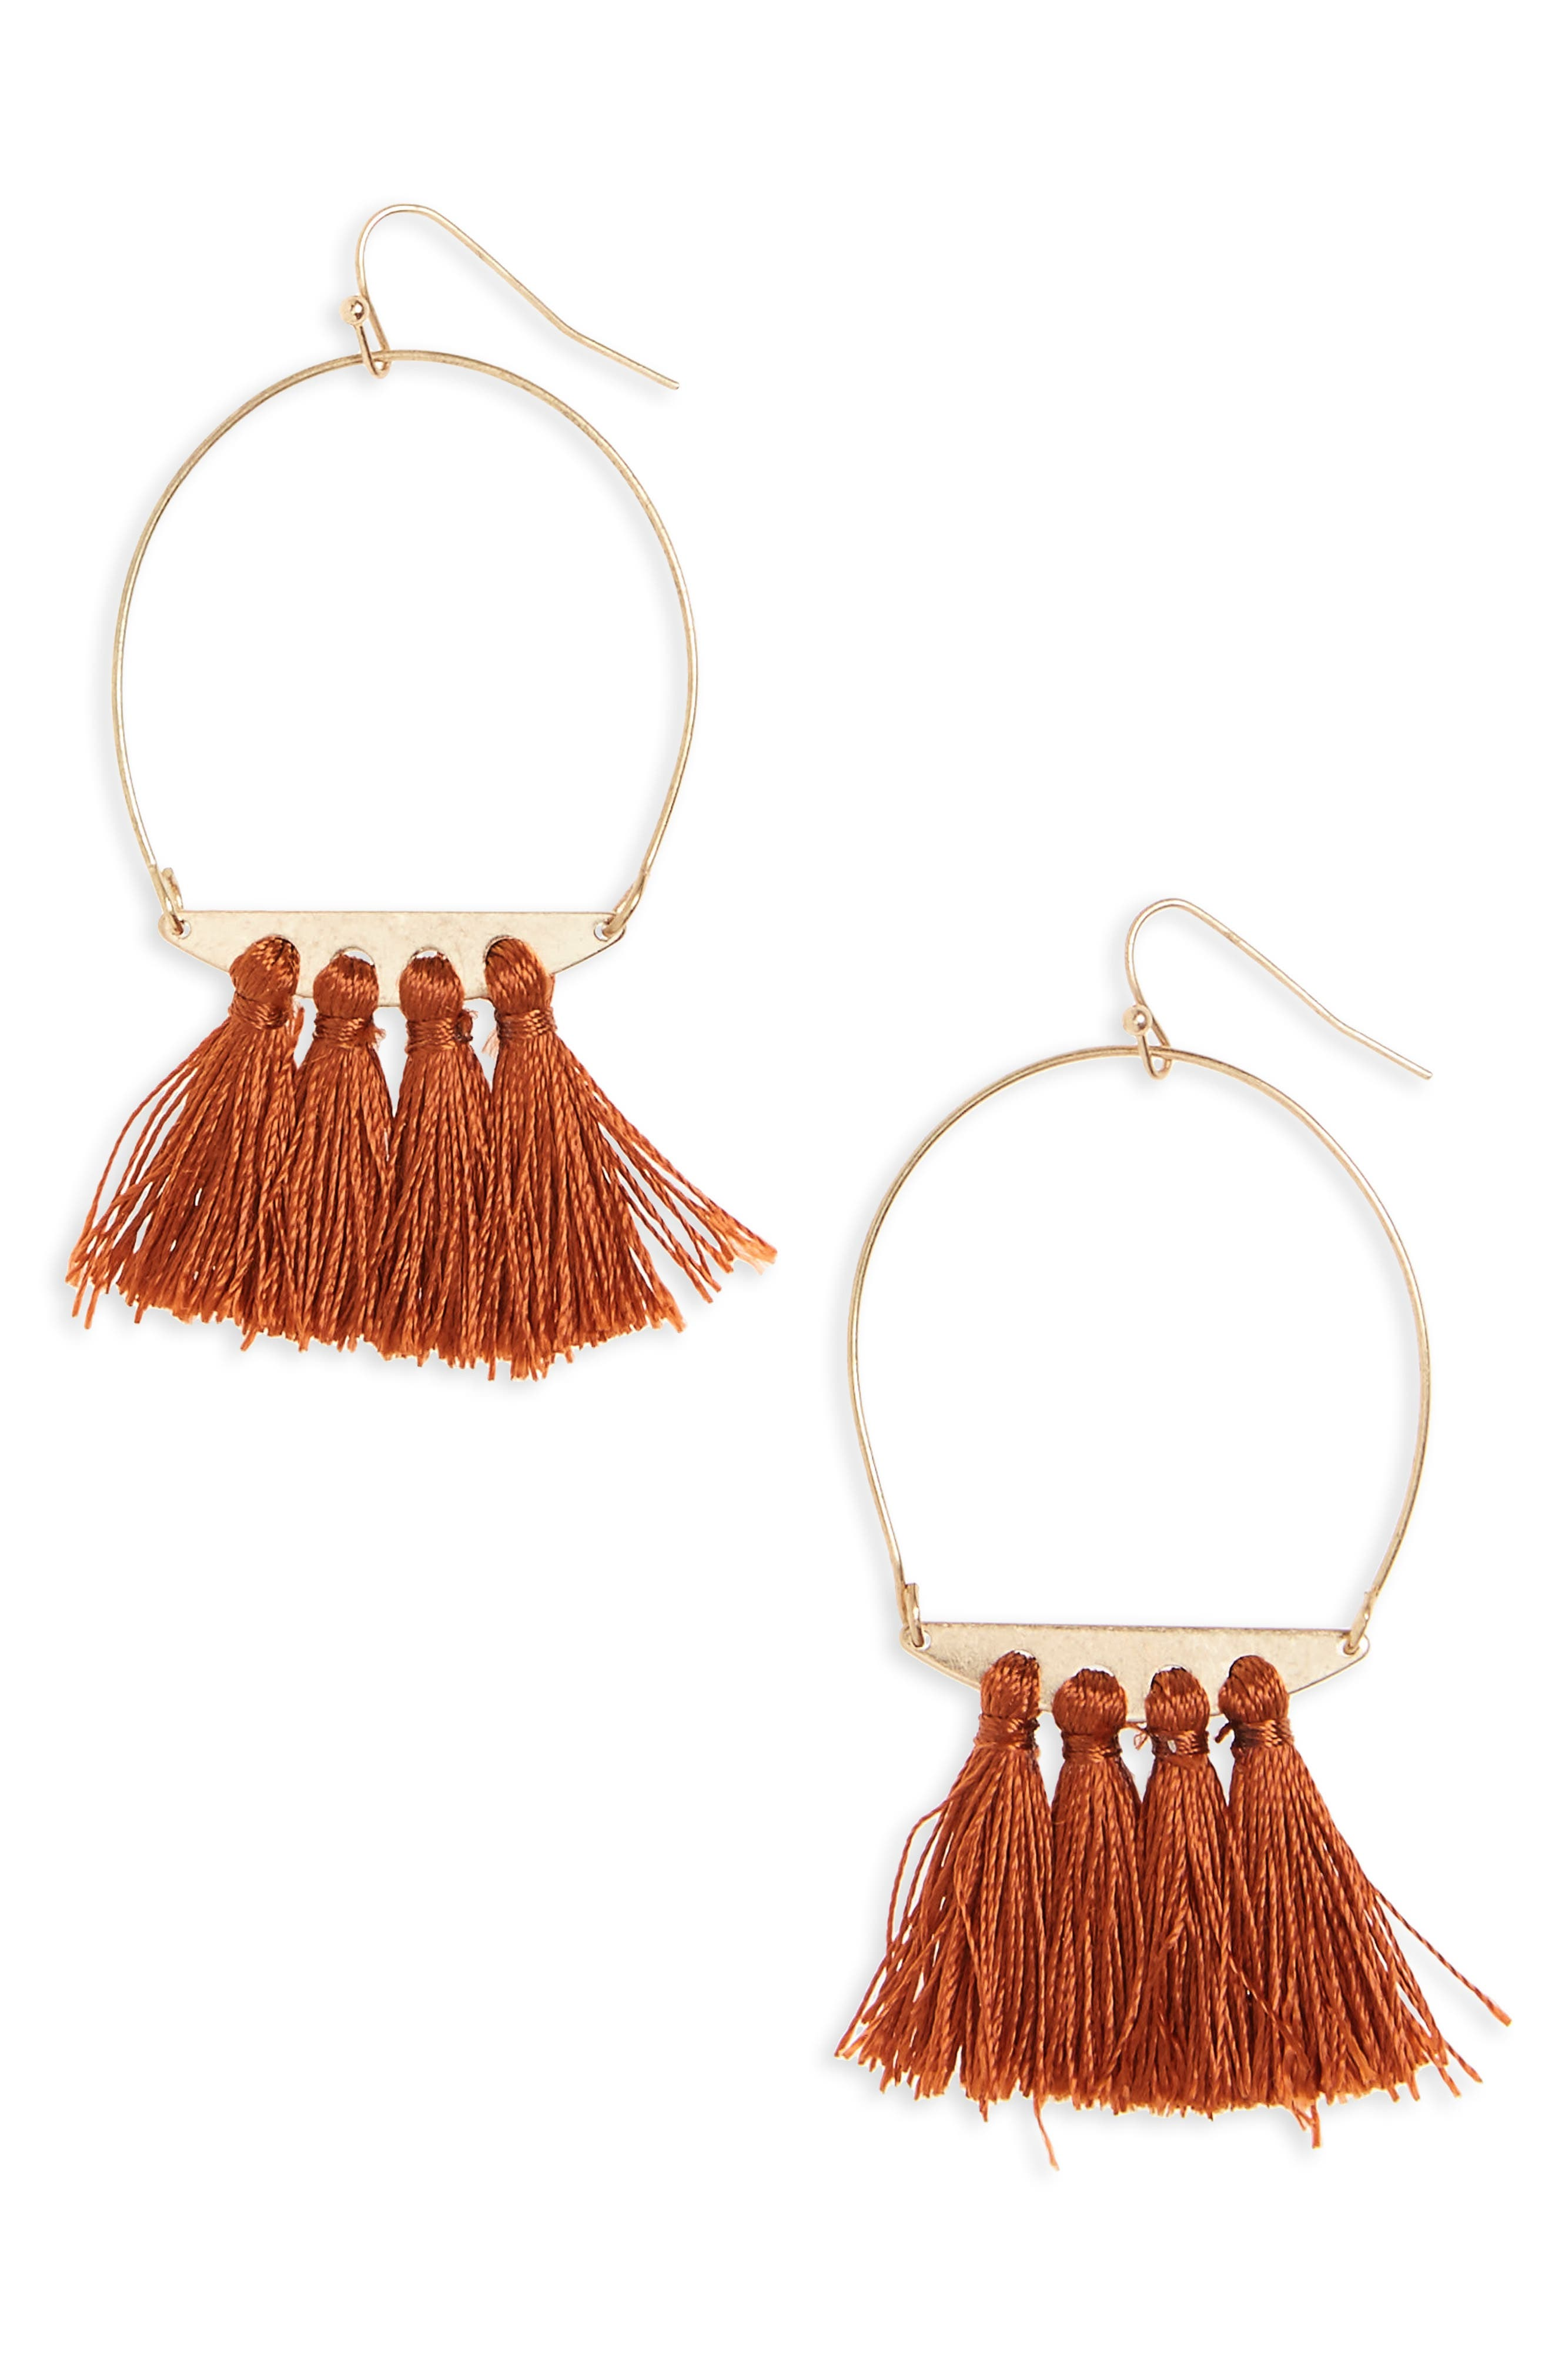 PANACEA Tassel Hoop Earrings